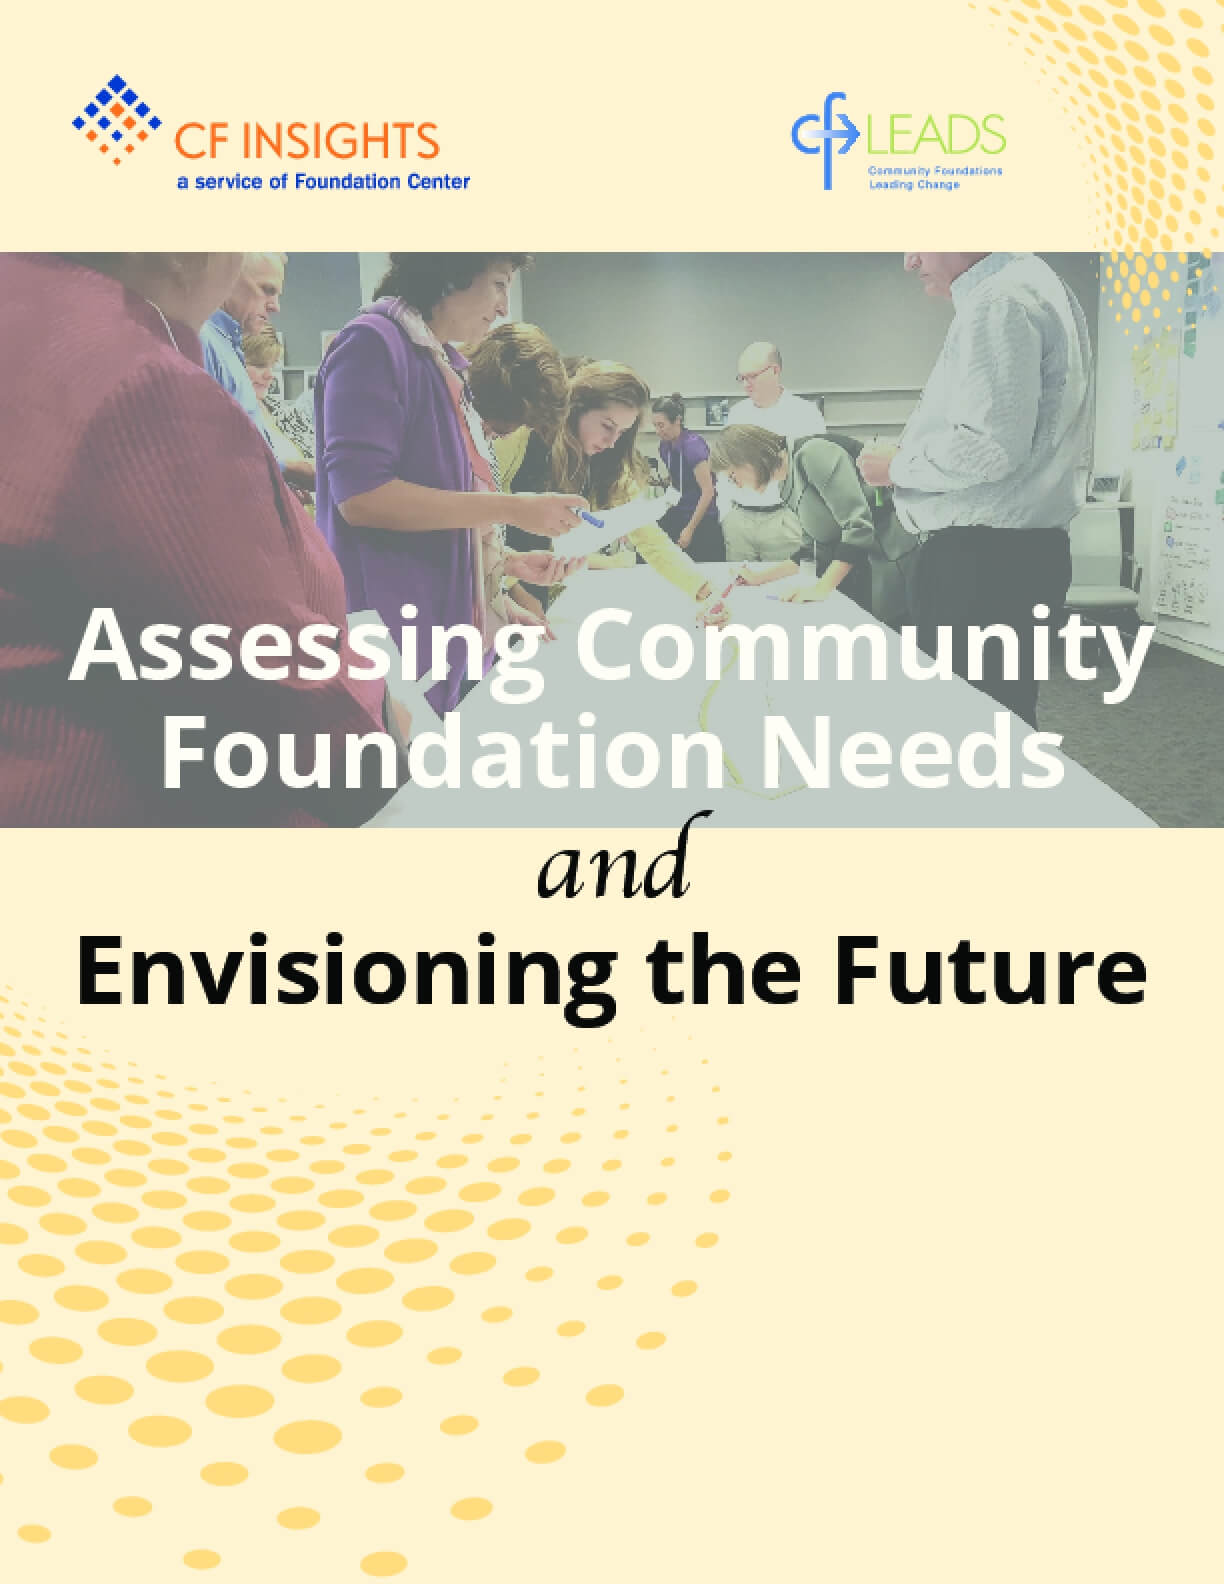 Assessing Community Foundation Needs and Envisioning the Future